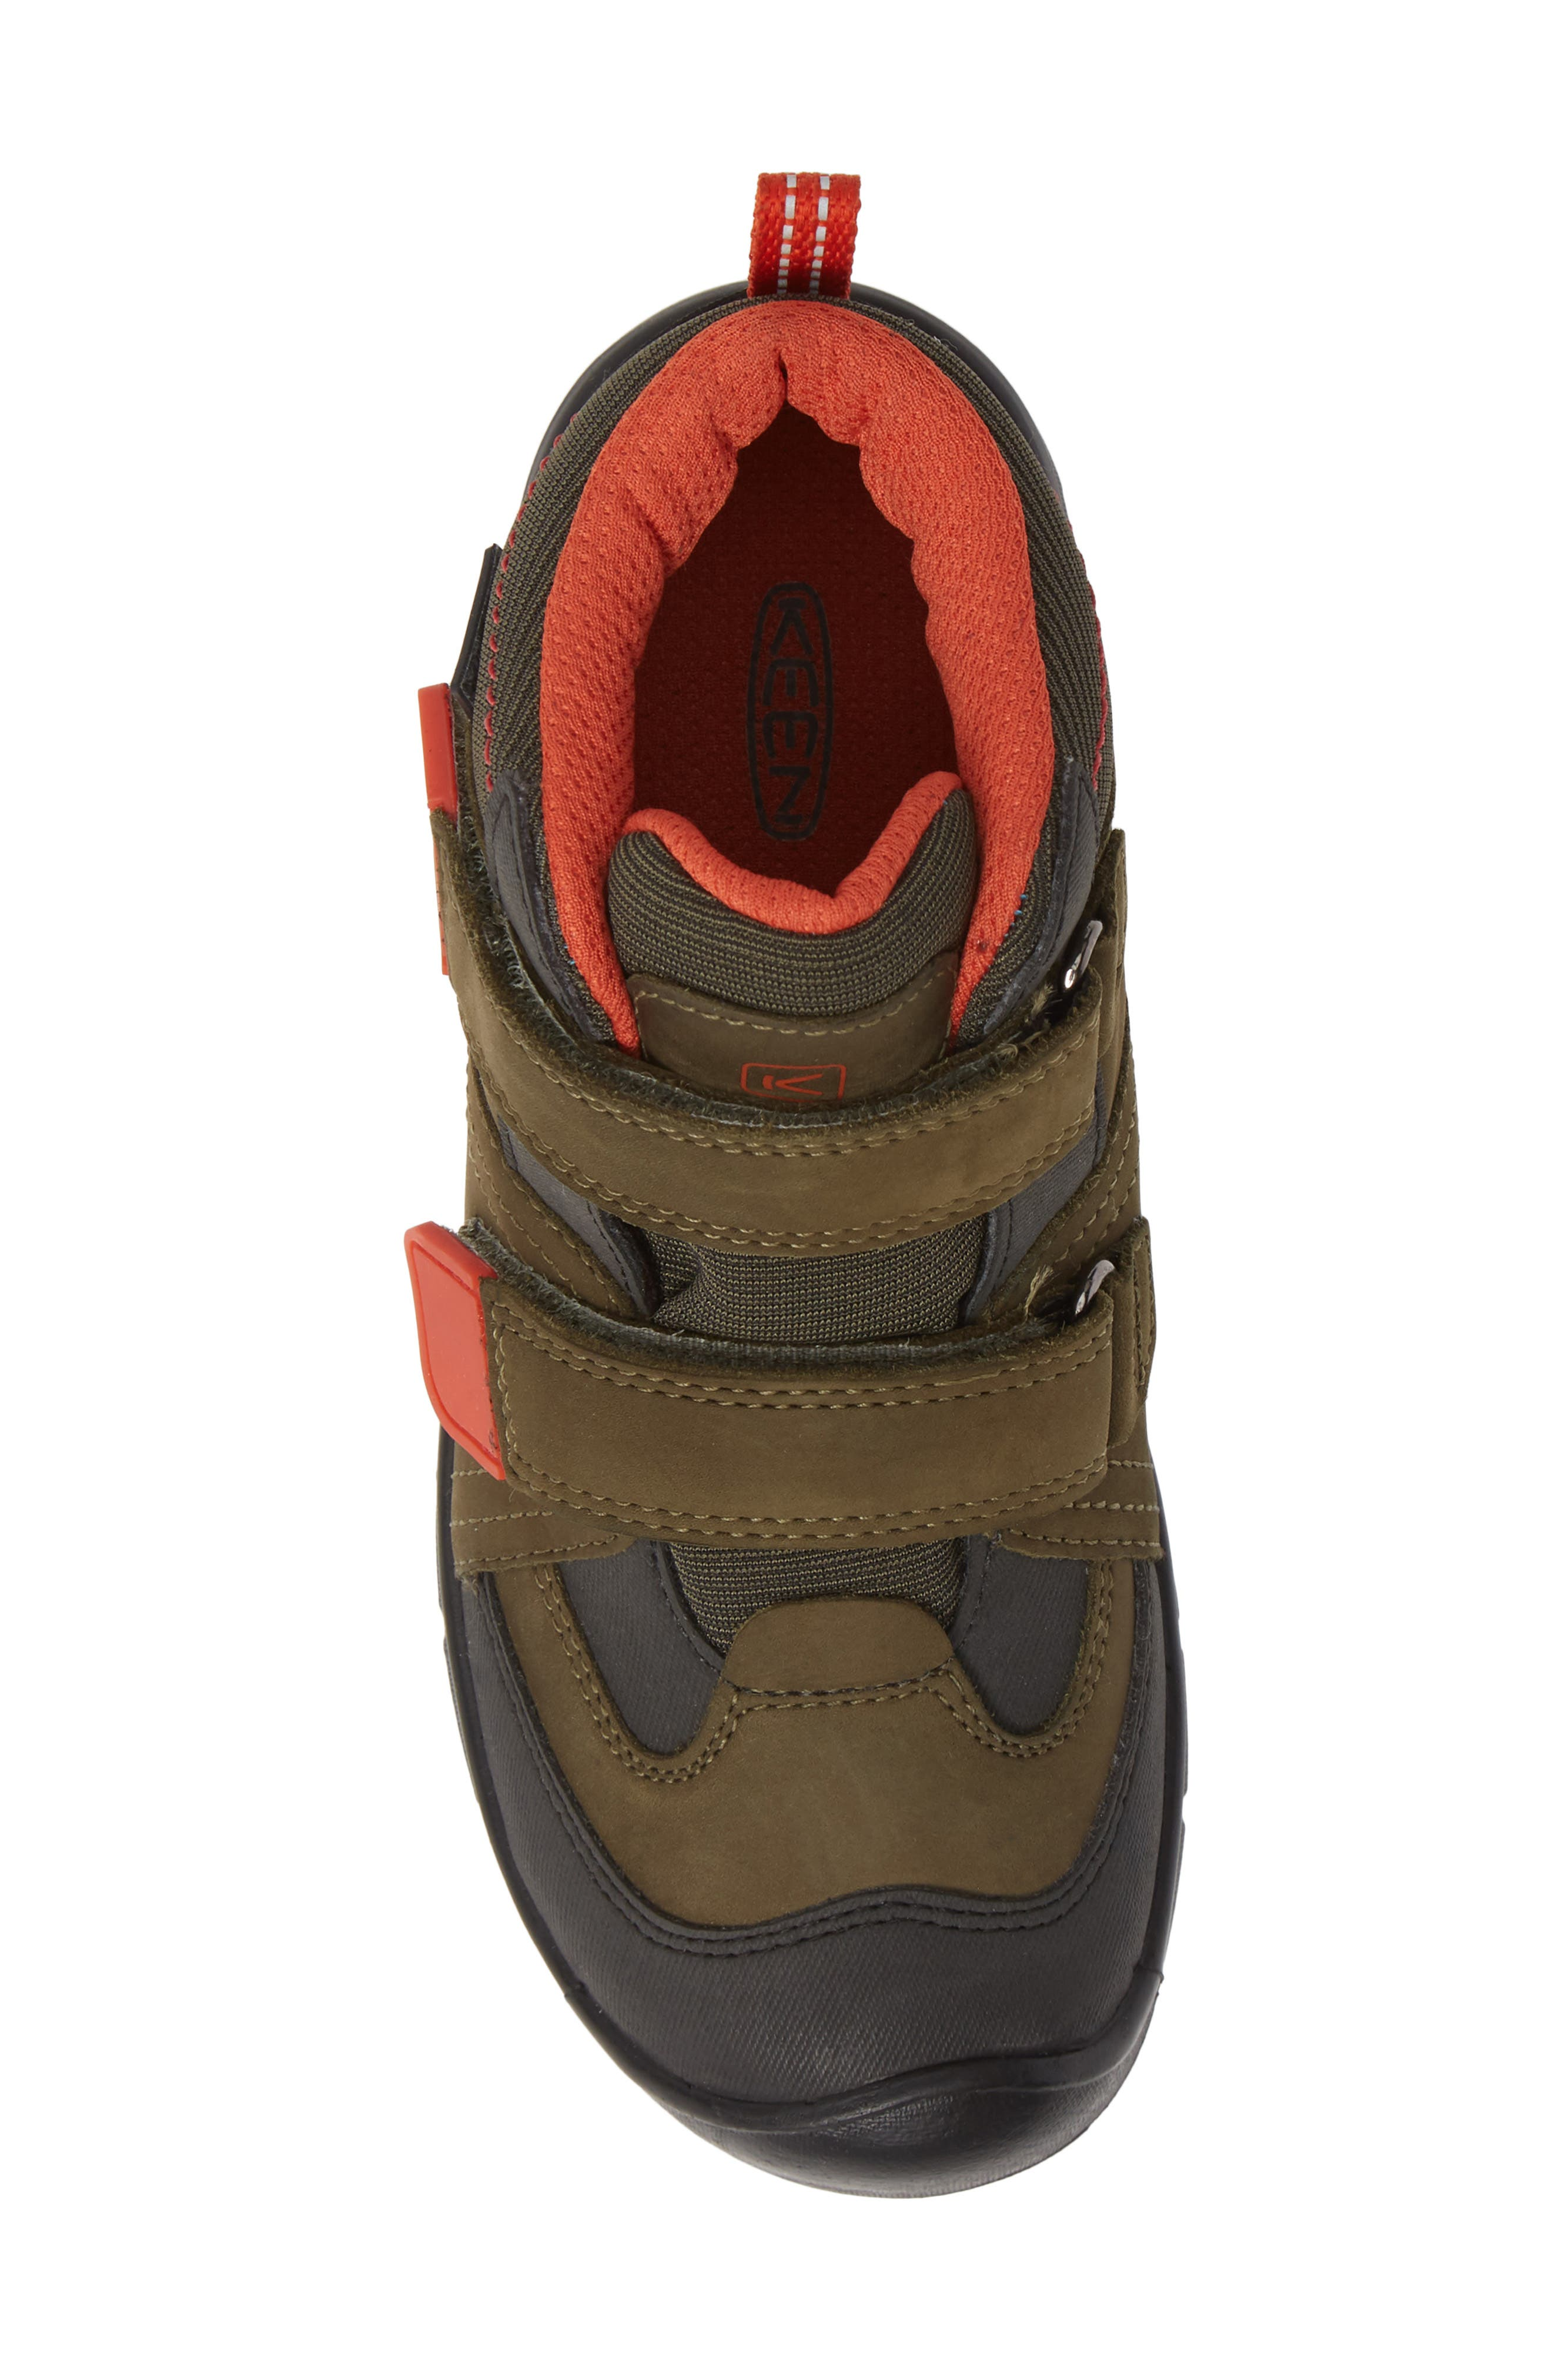 KEEN, Hikeport Strap Waterproof Mid Boot, Alternate thumbnail 5, color, MARTINI OLIVE/ PUMPKIN